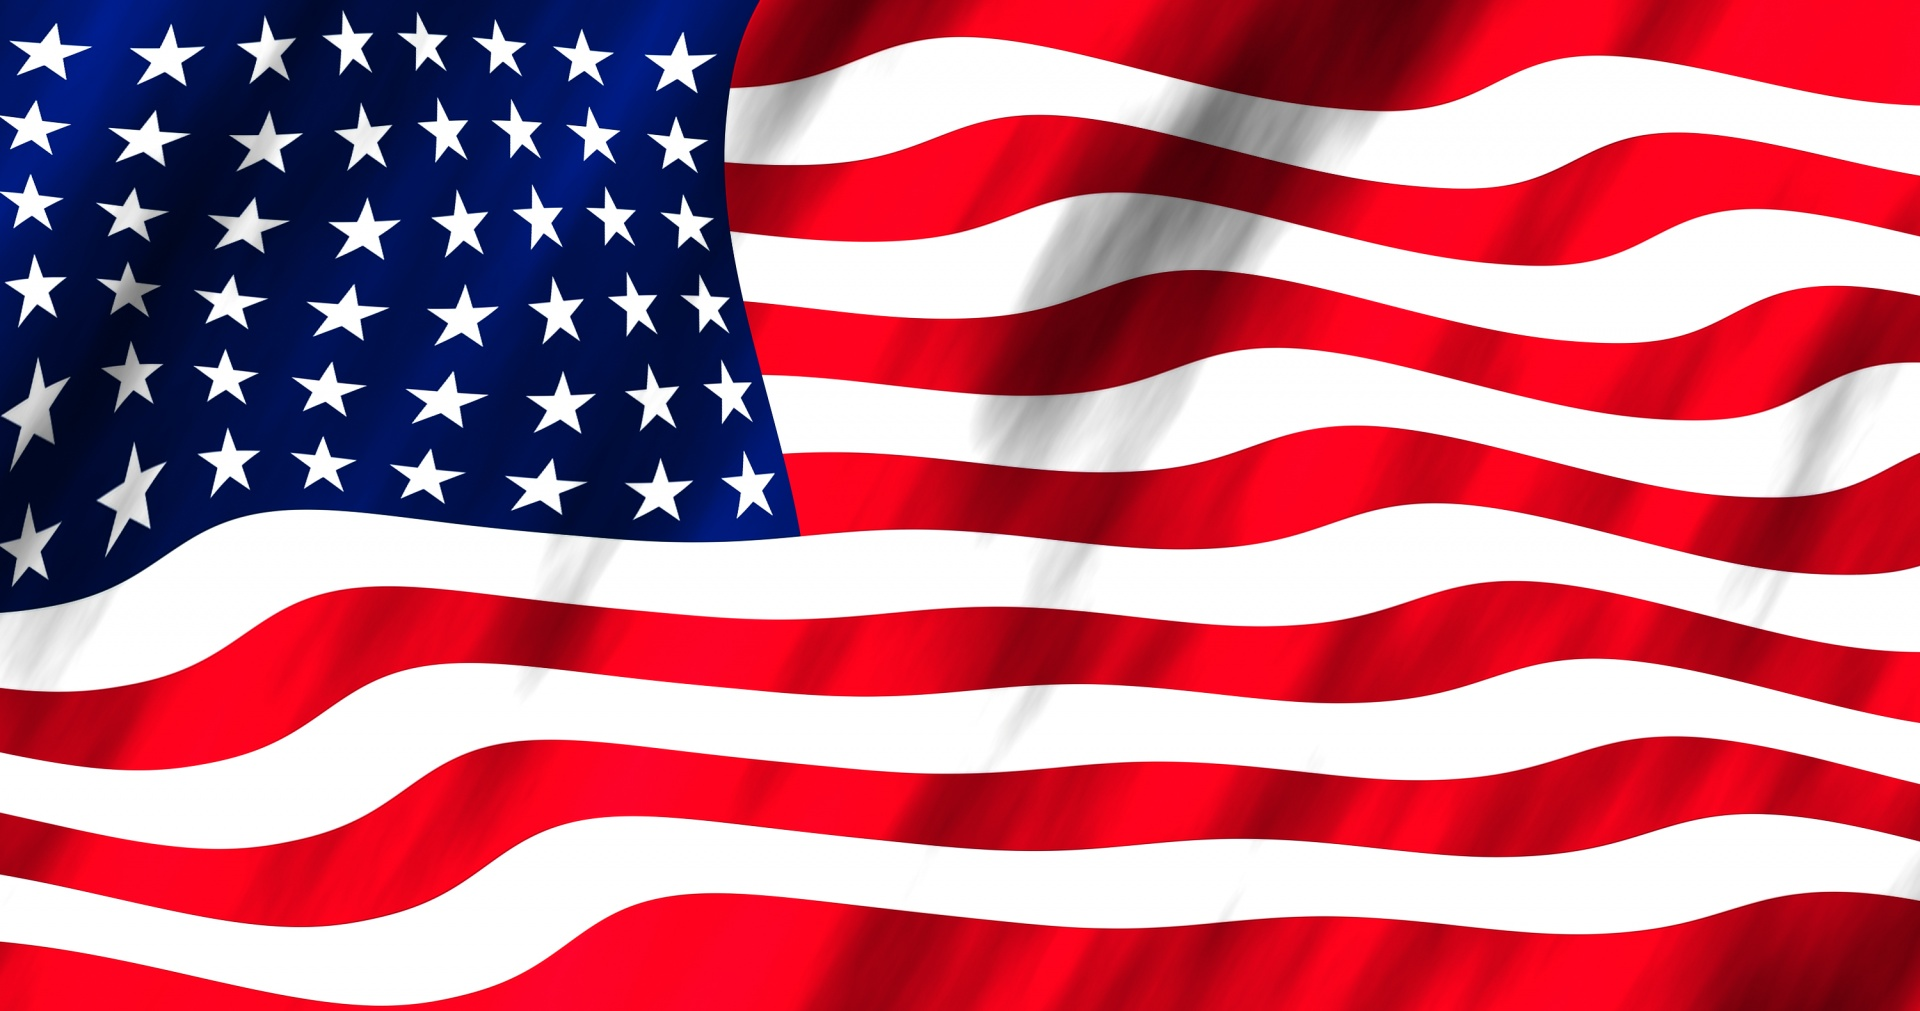 american-flag-1459201553ppe_437571